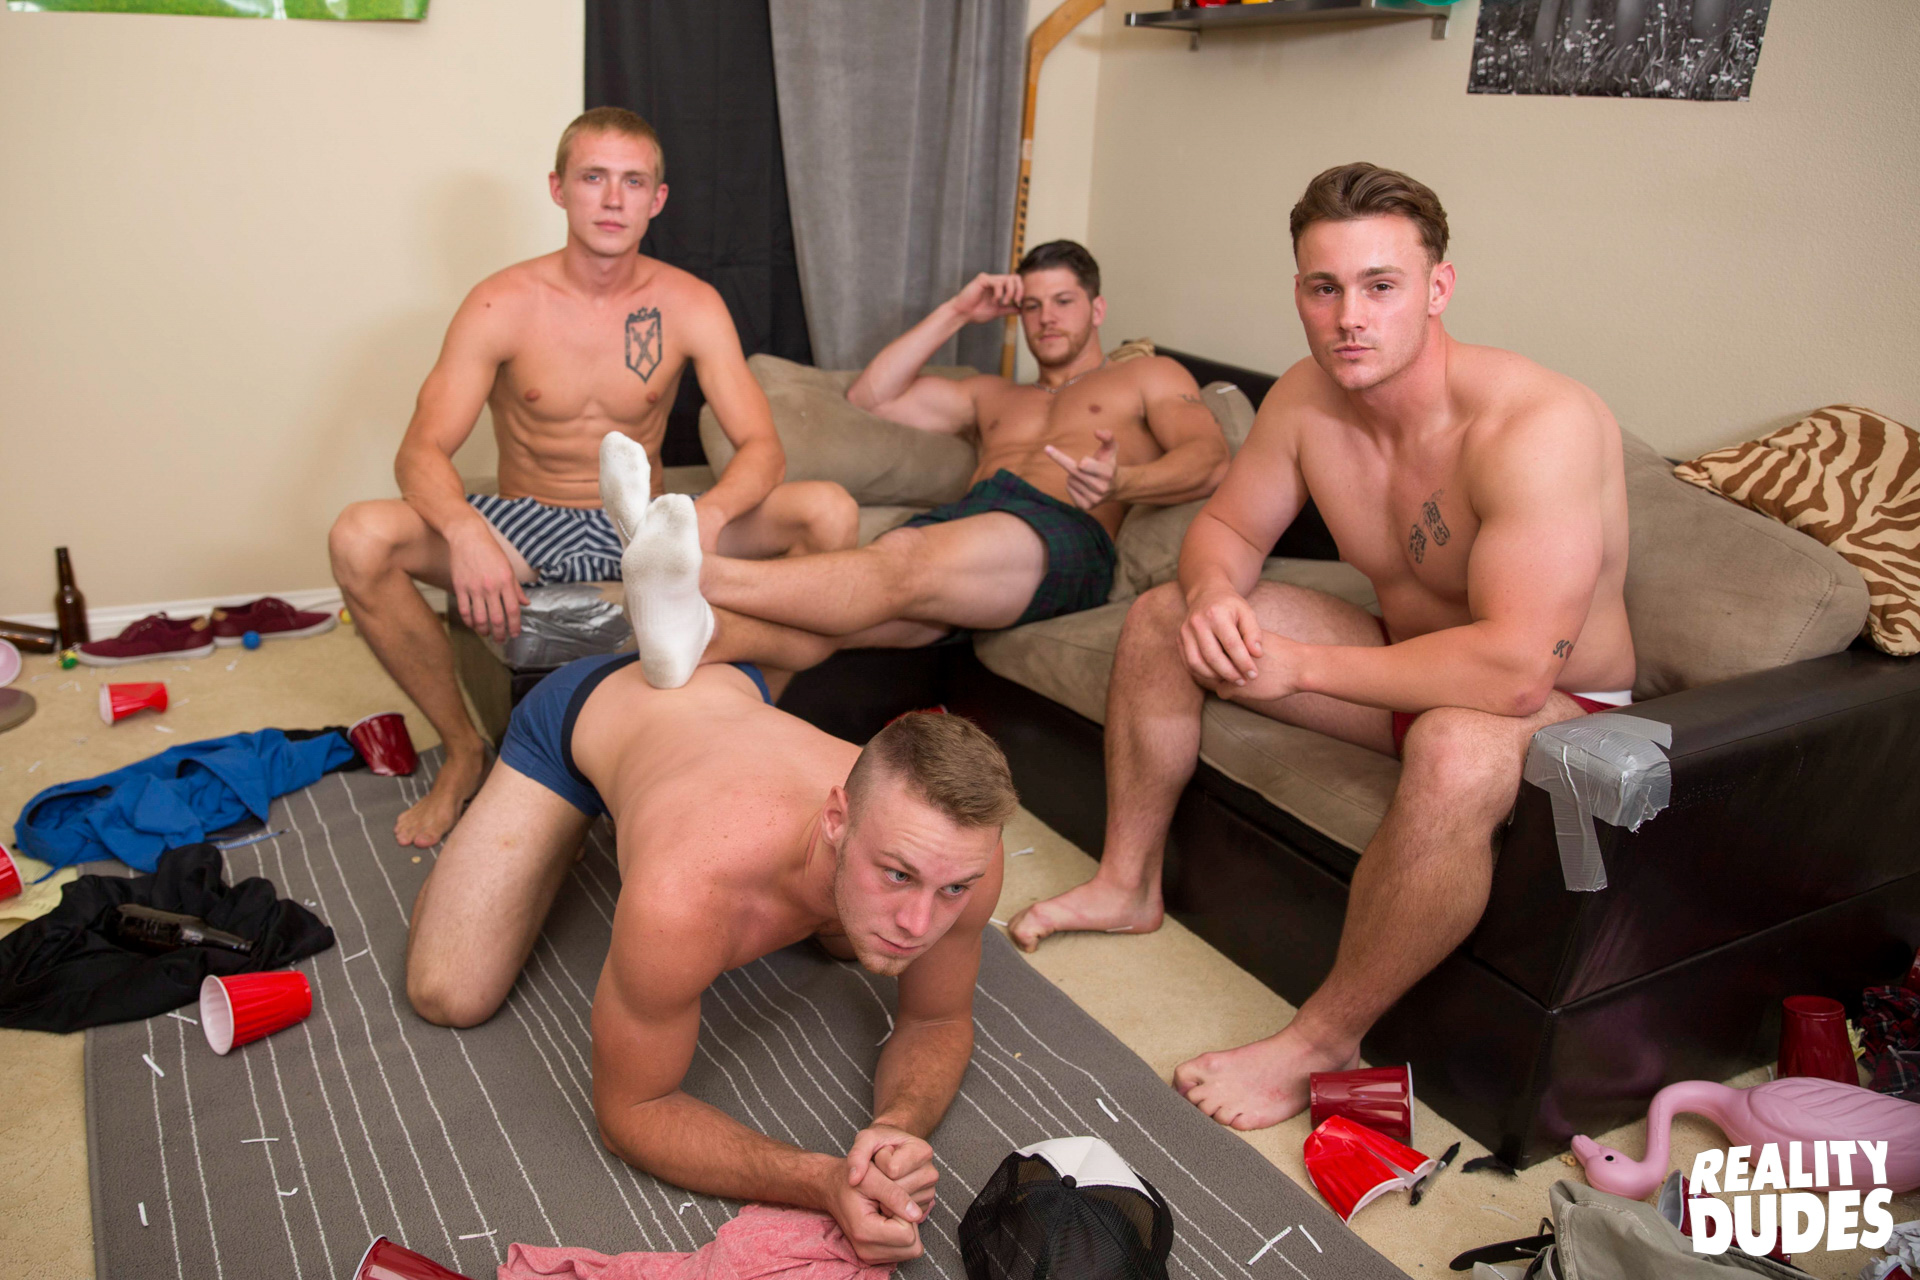 Hot amateur guy strippers